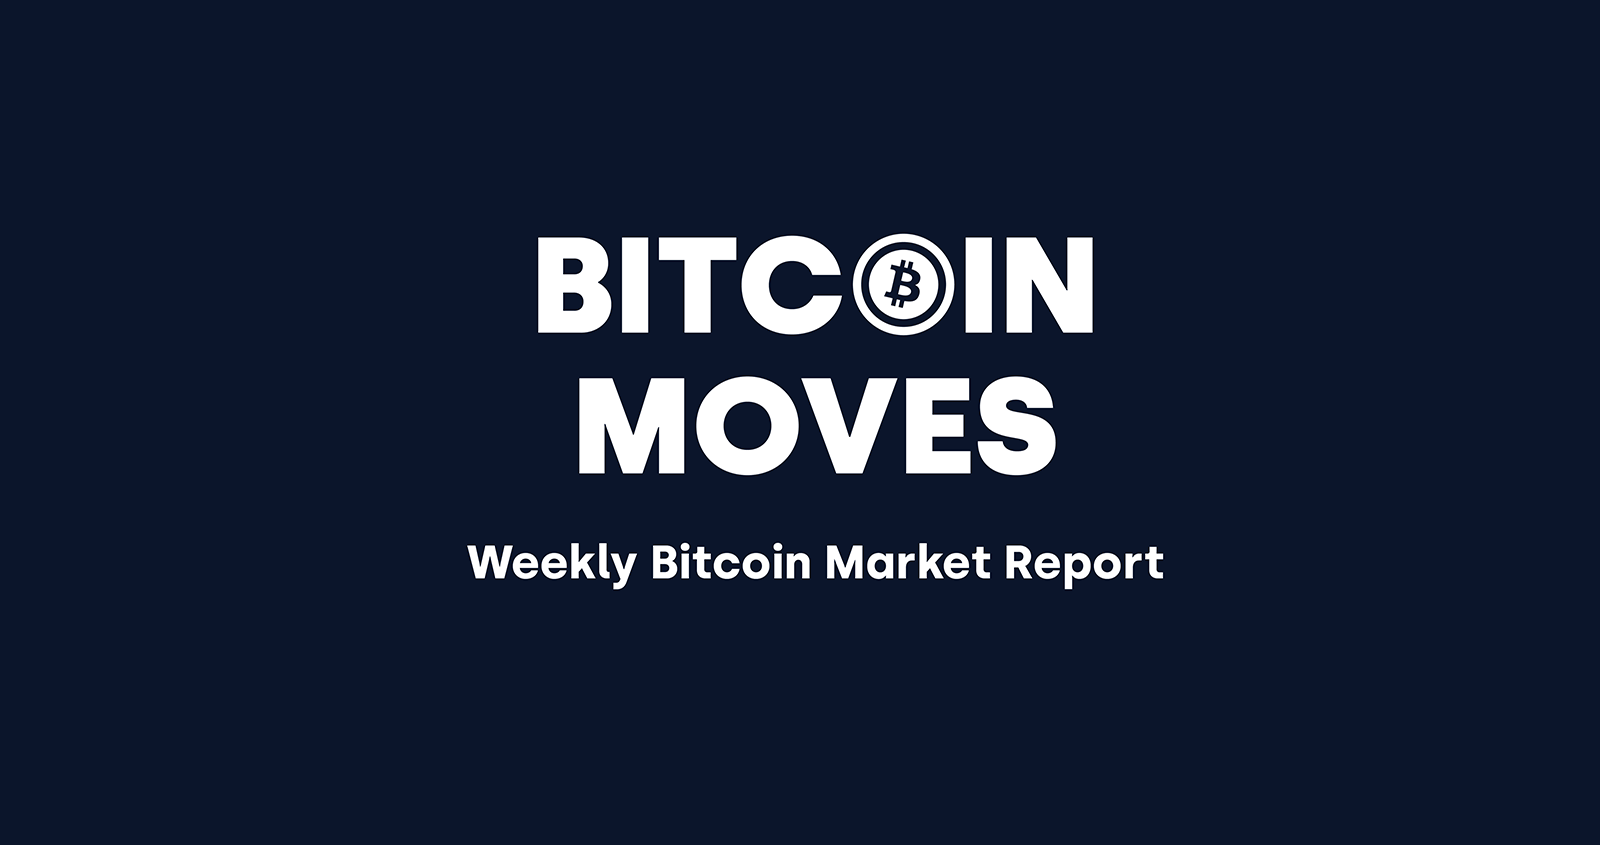 Bitcoin Moves weekly bitcoin market report OKCoin